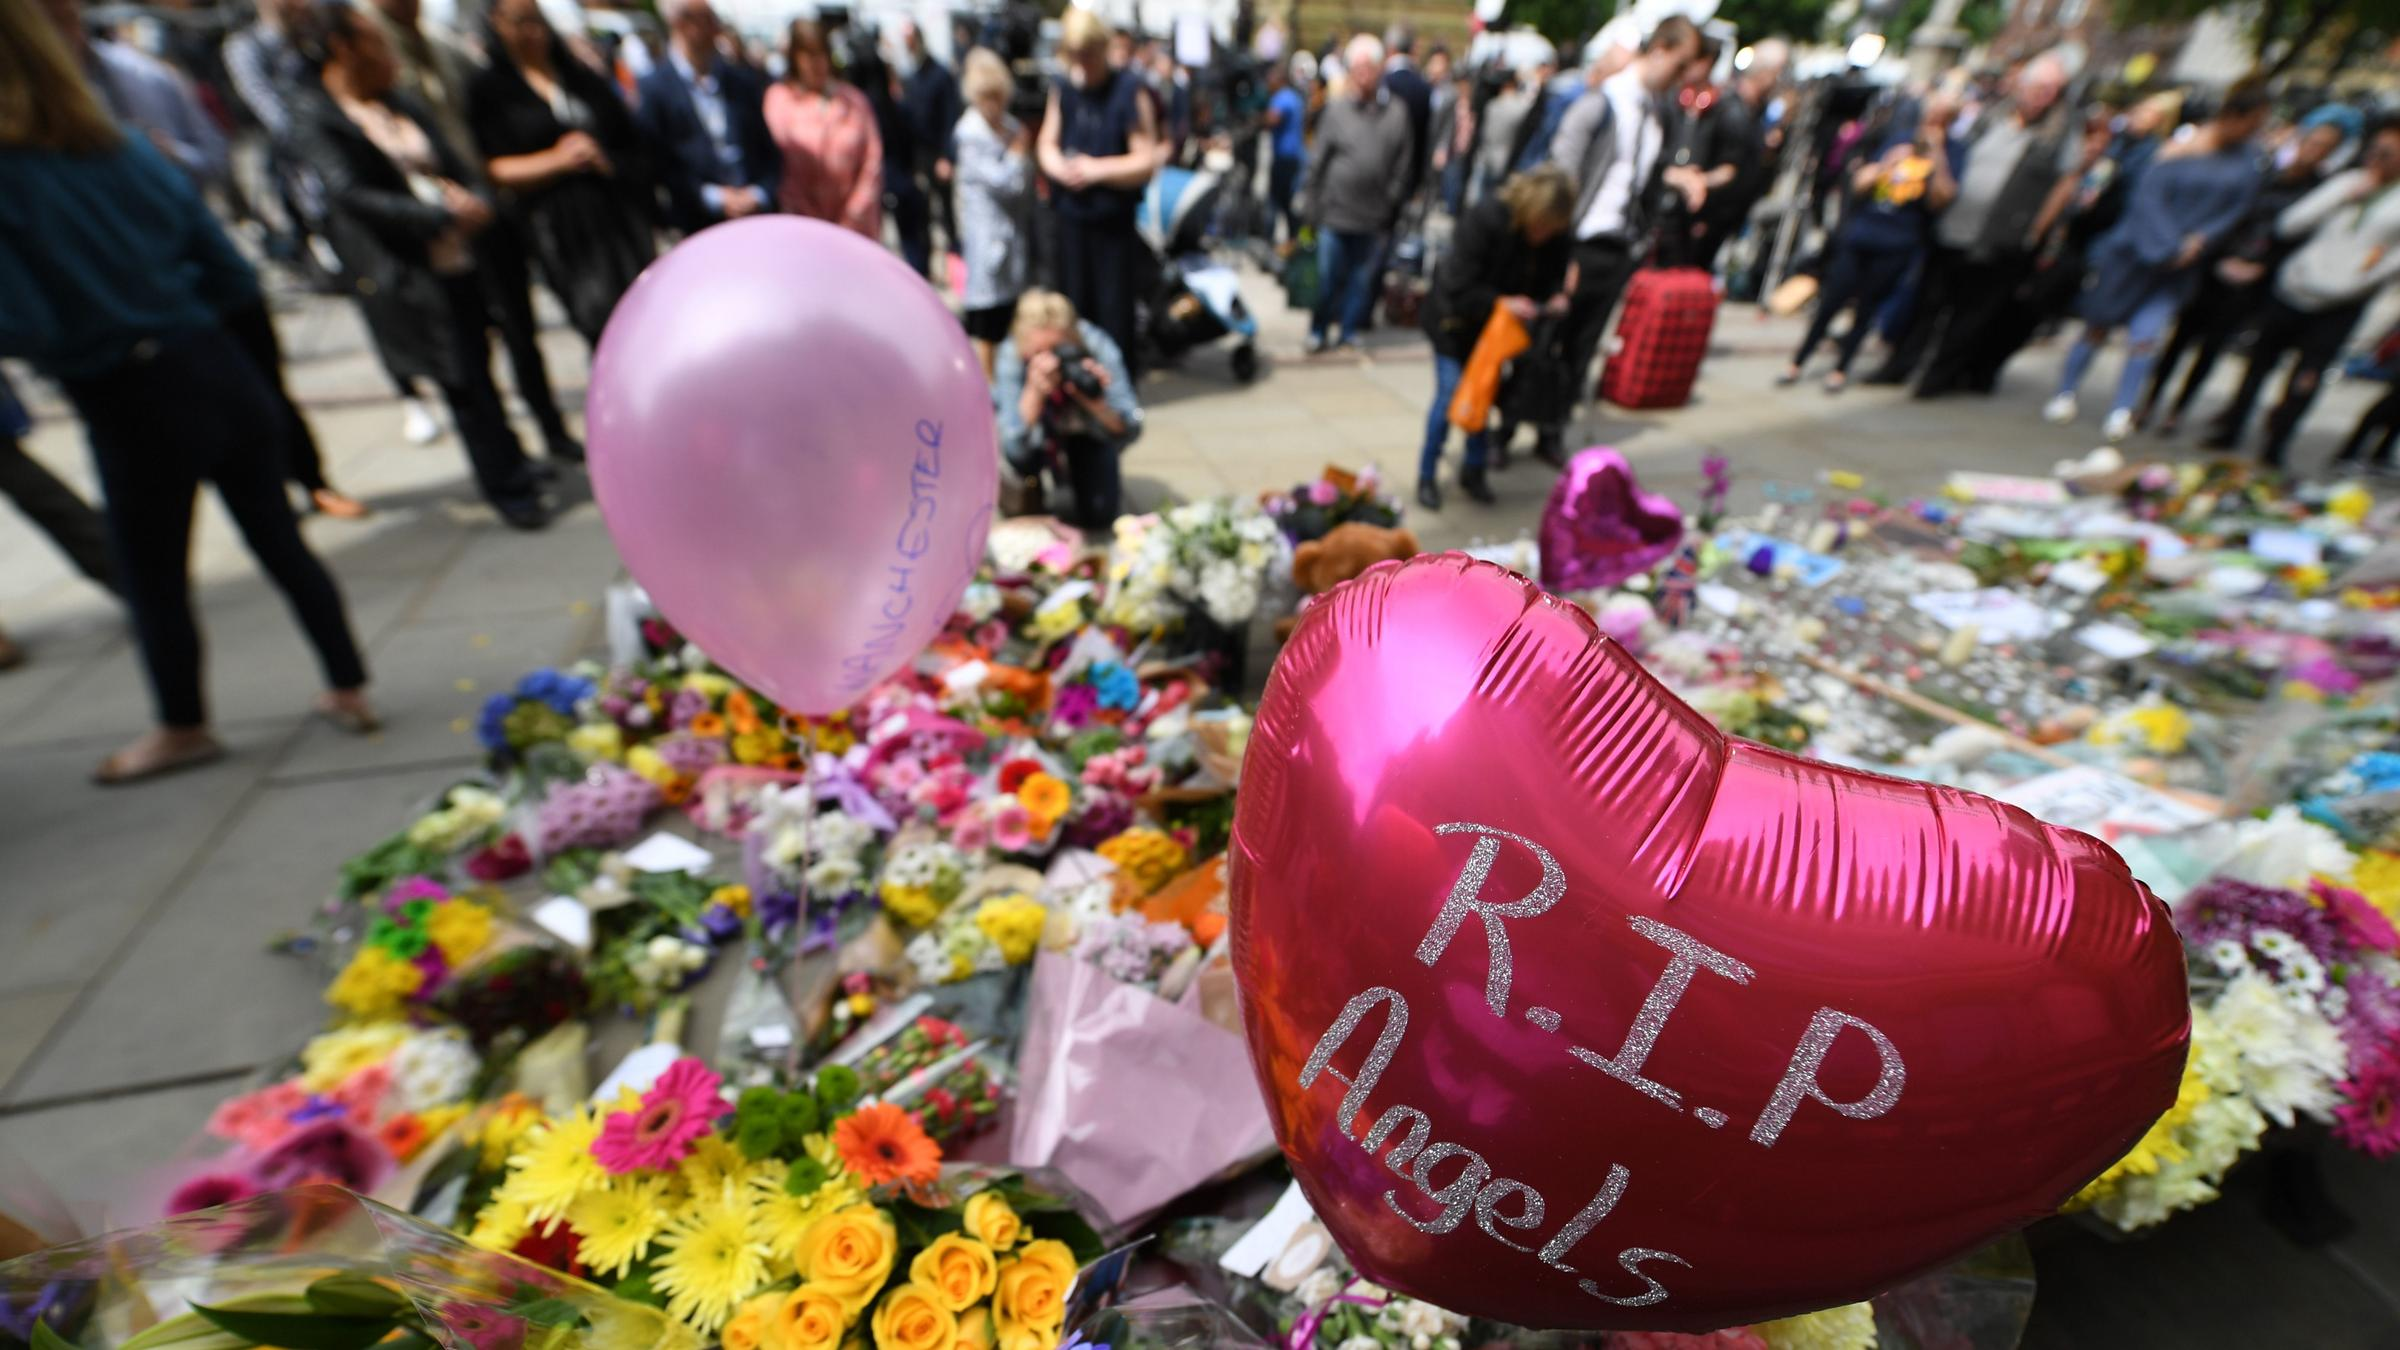 A Beautiful Little Girl Victims Of Manchester Bombing Remembered